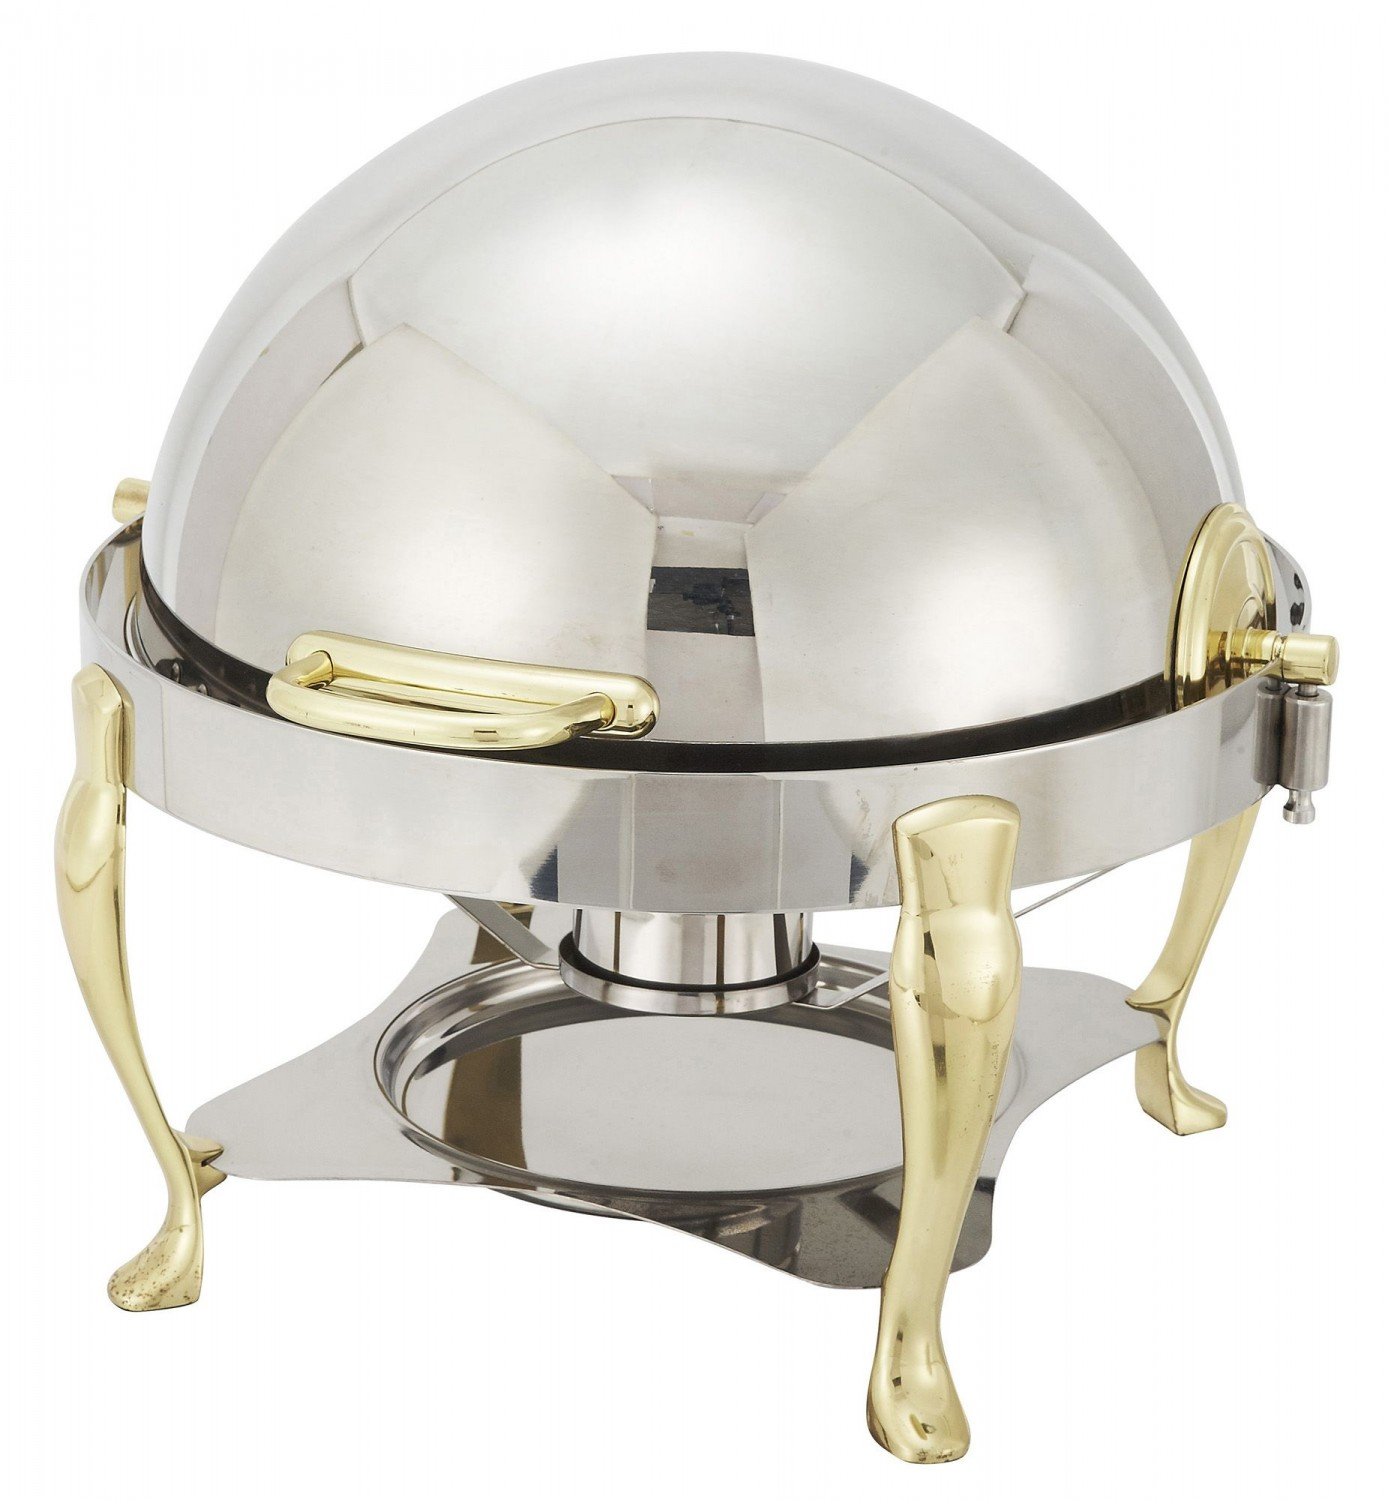 Winco 308A Vintage Round Rolltop Chafer 6 Qt.